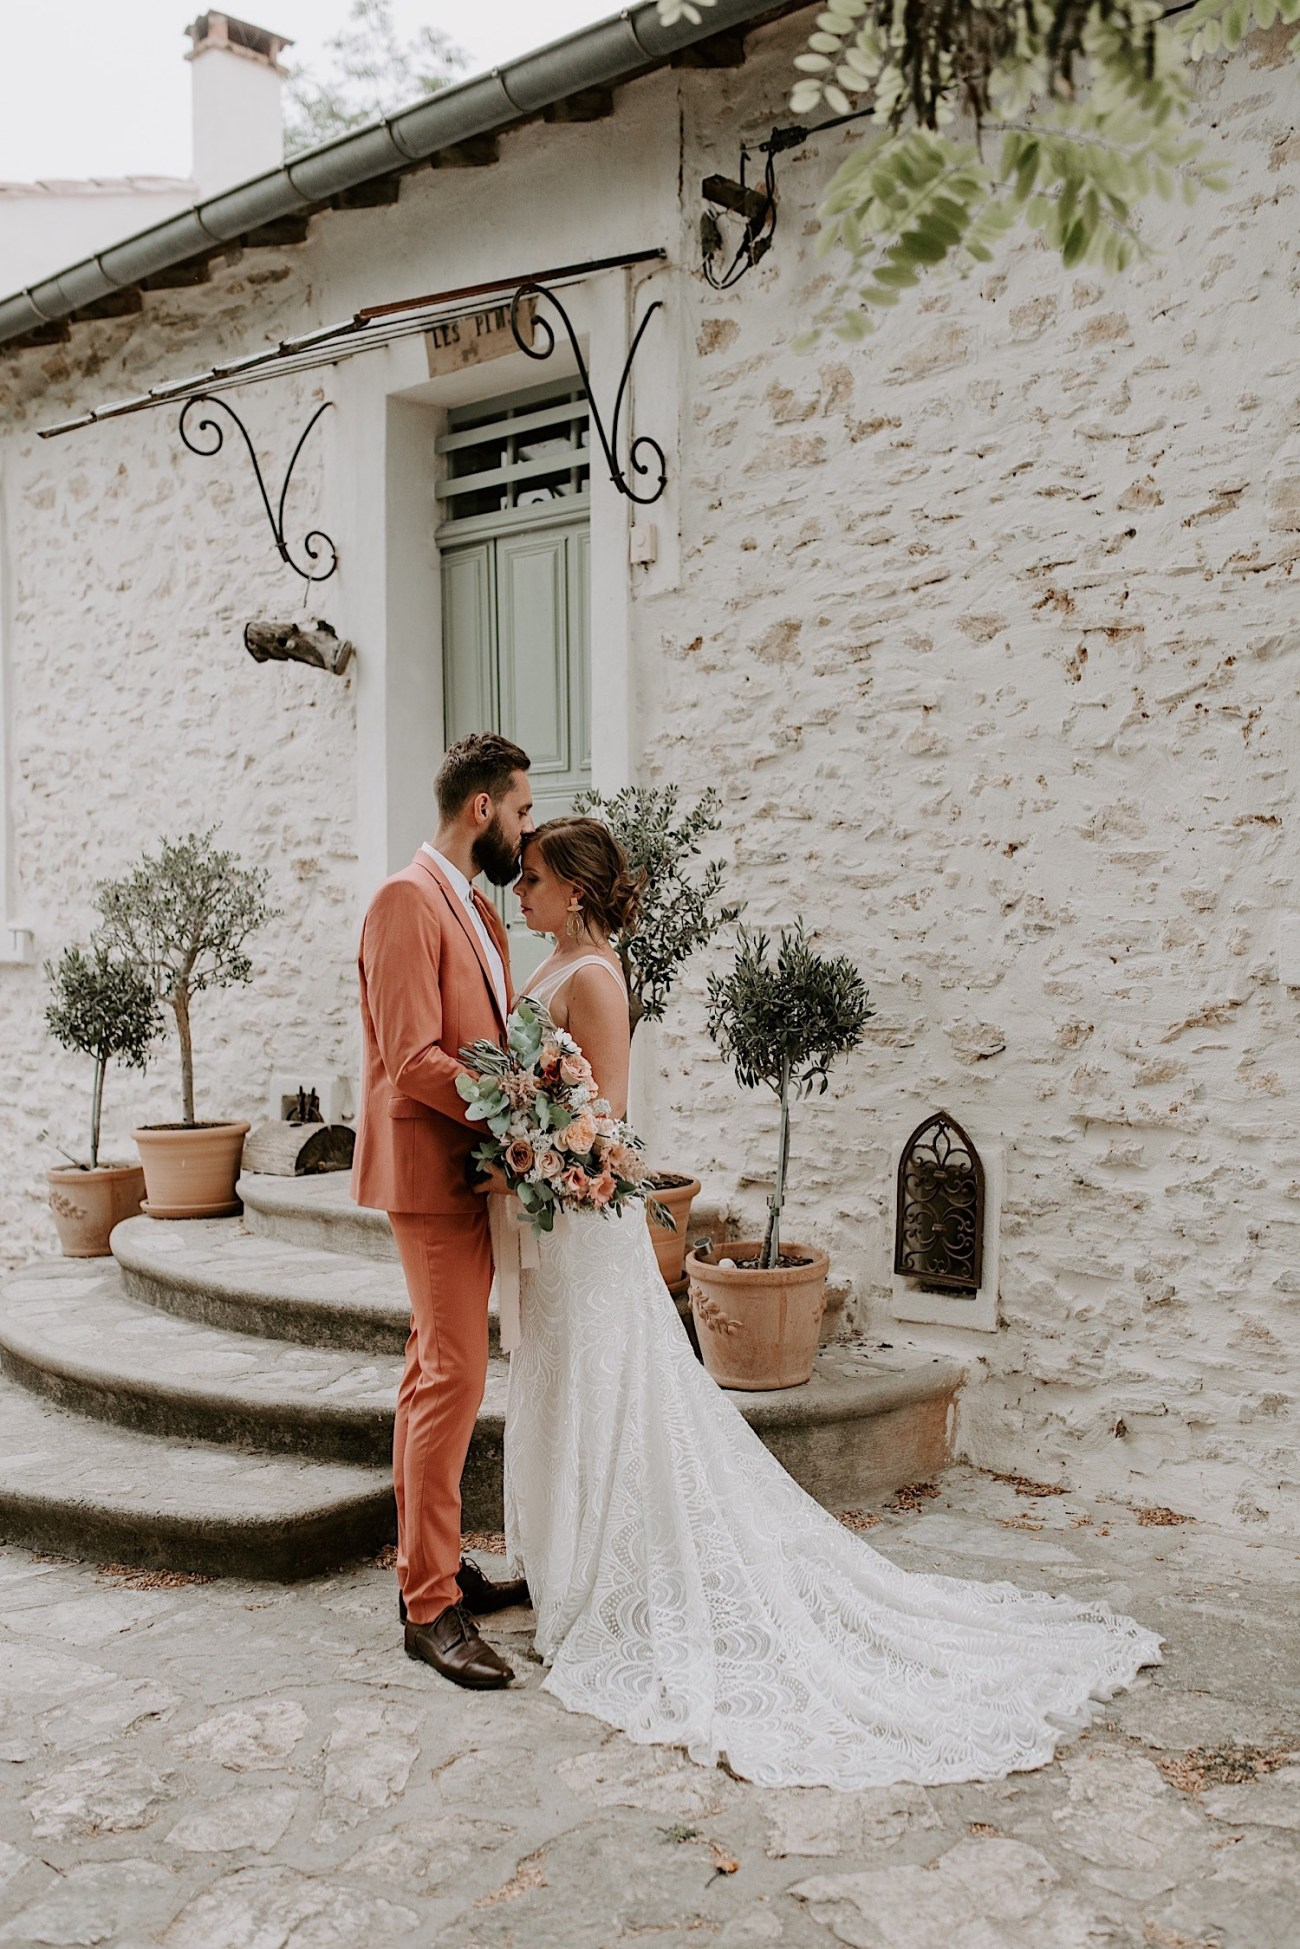 Terre Ugo Un Marriage En Provence Lavender Field Wedding French Wedding Provence Wedding Destination Wedding France Photographe De Marriage Provence France Anais Possamai Photography 19